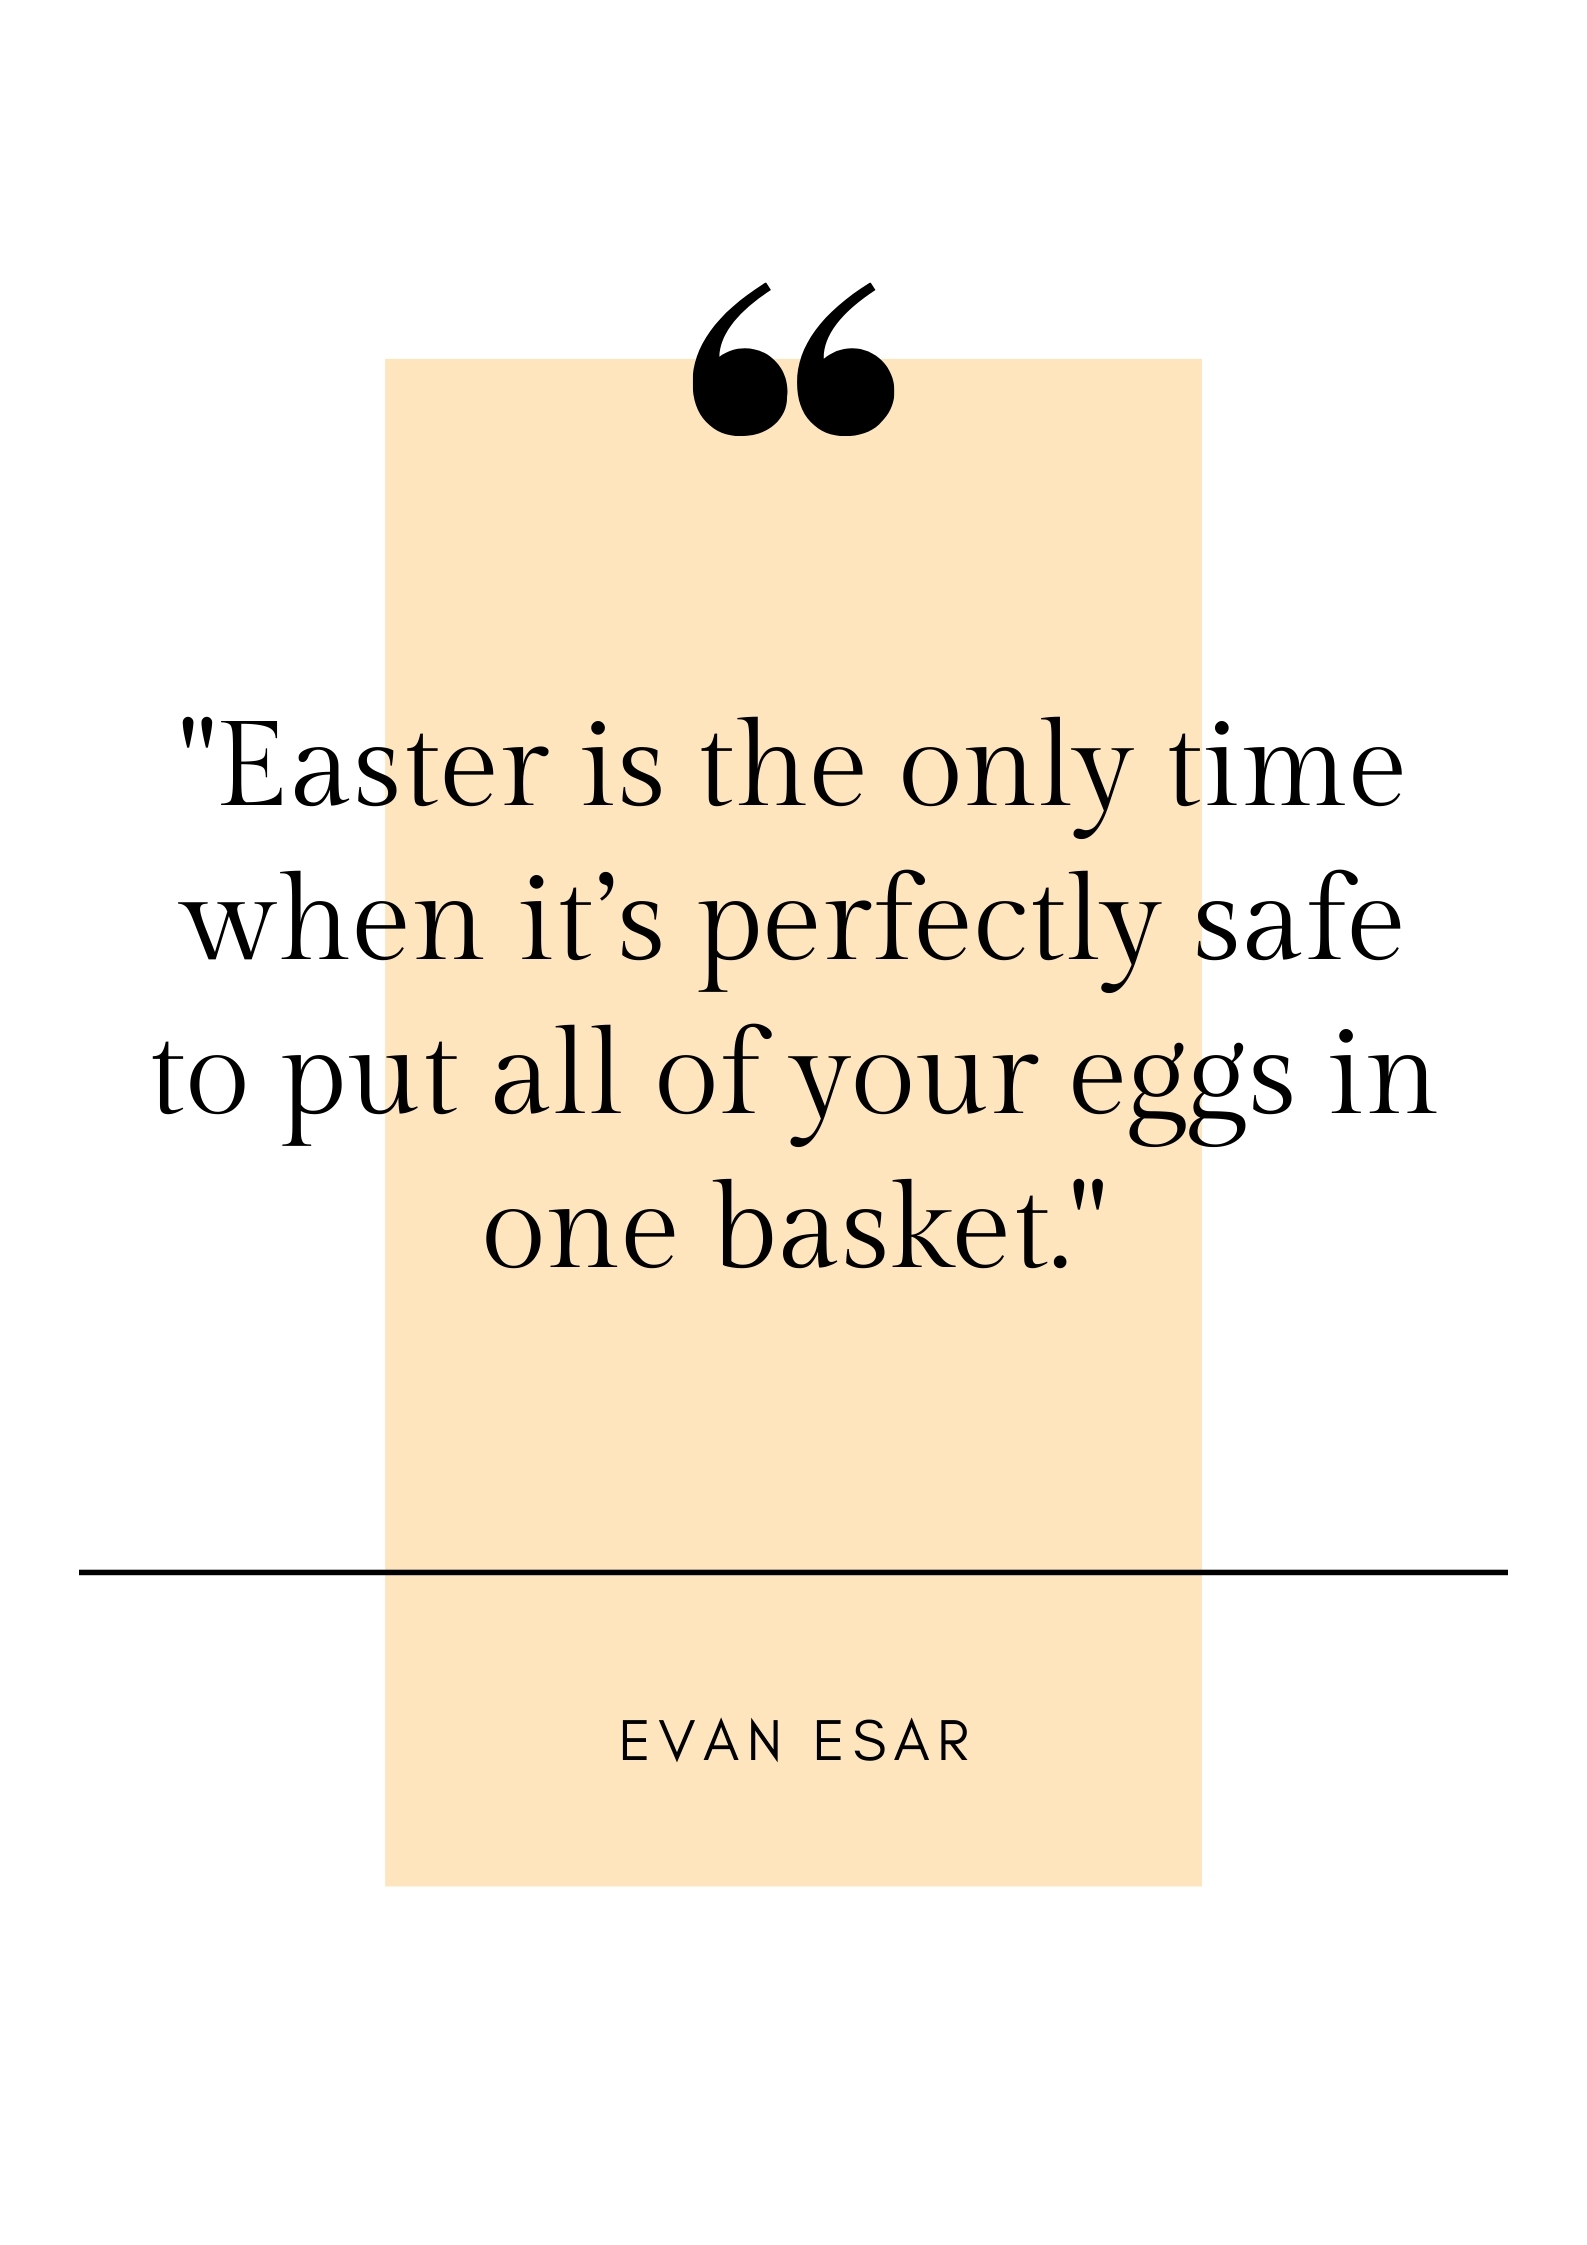 funny easter quote